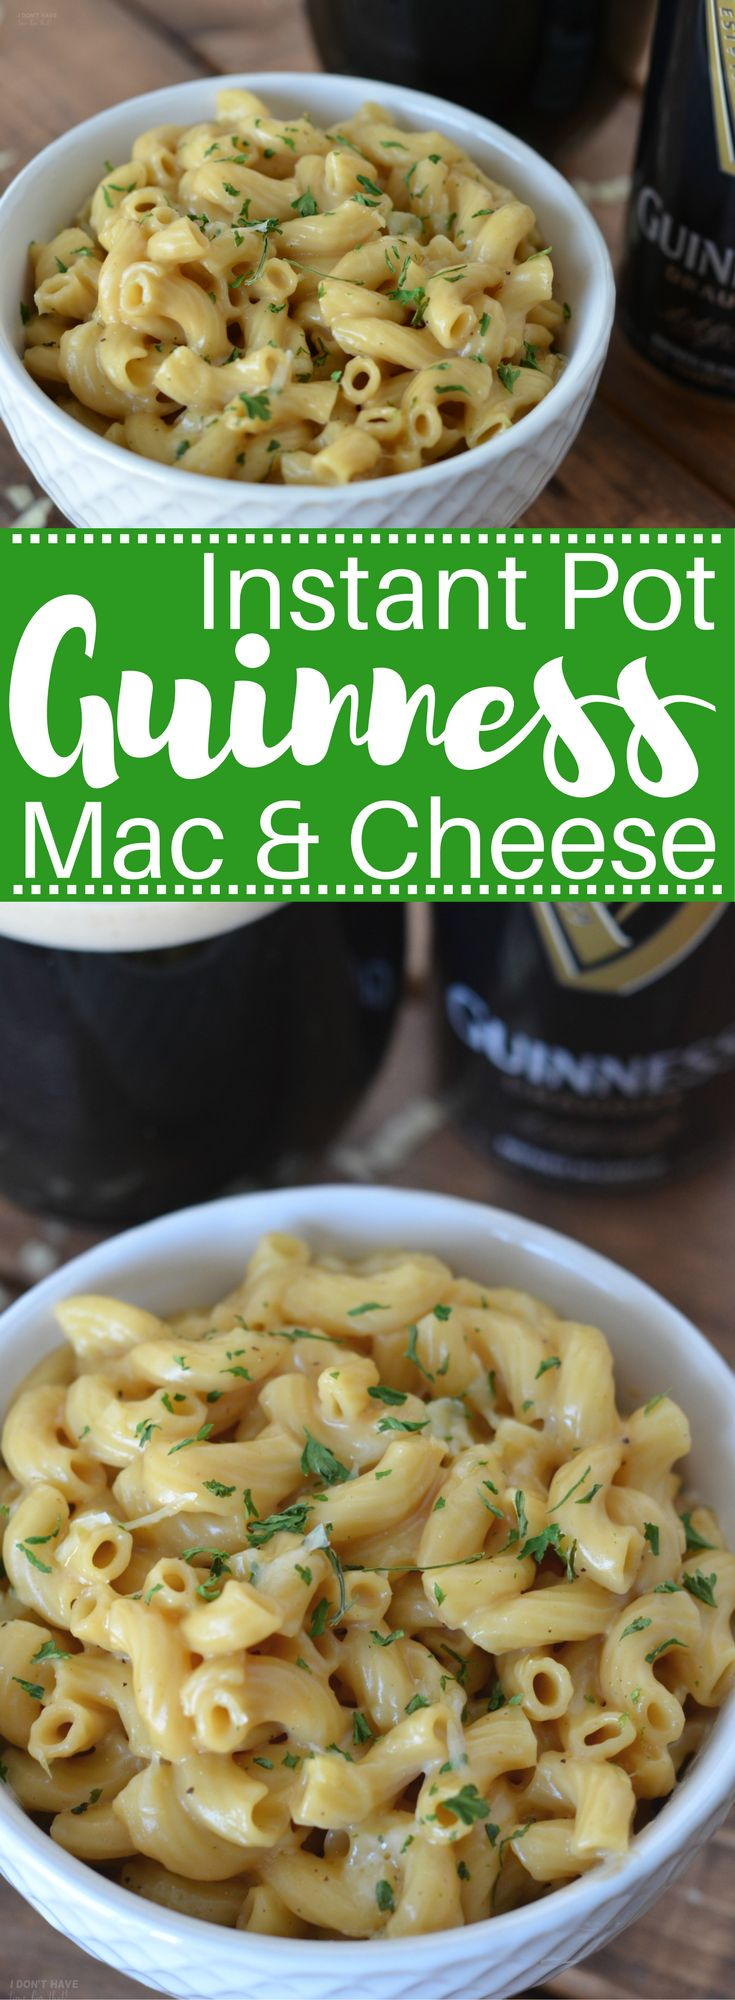 Put an adult spin on your next batch of mac and cheese! Instant Pot Guinness Mac and Cheese is going to be a home run at your St Patrick's Day celebration!